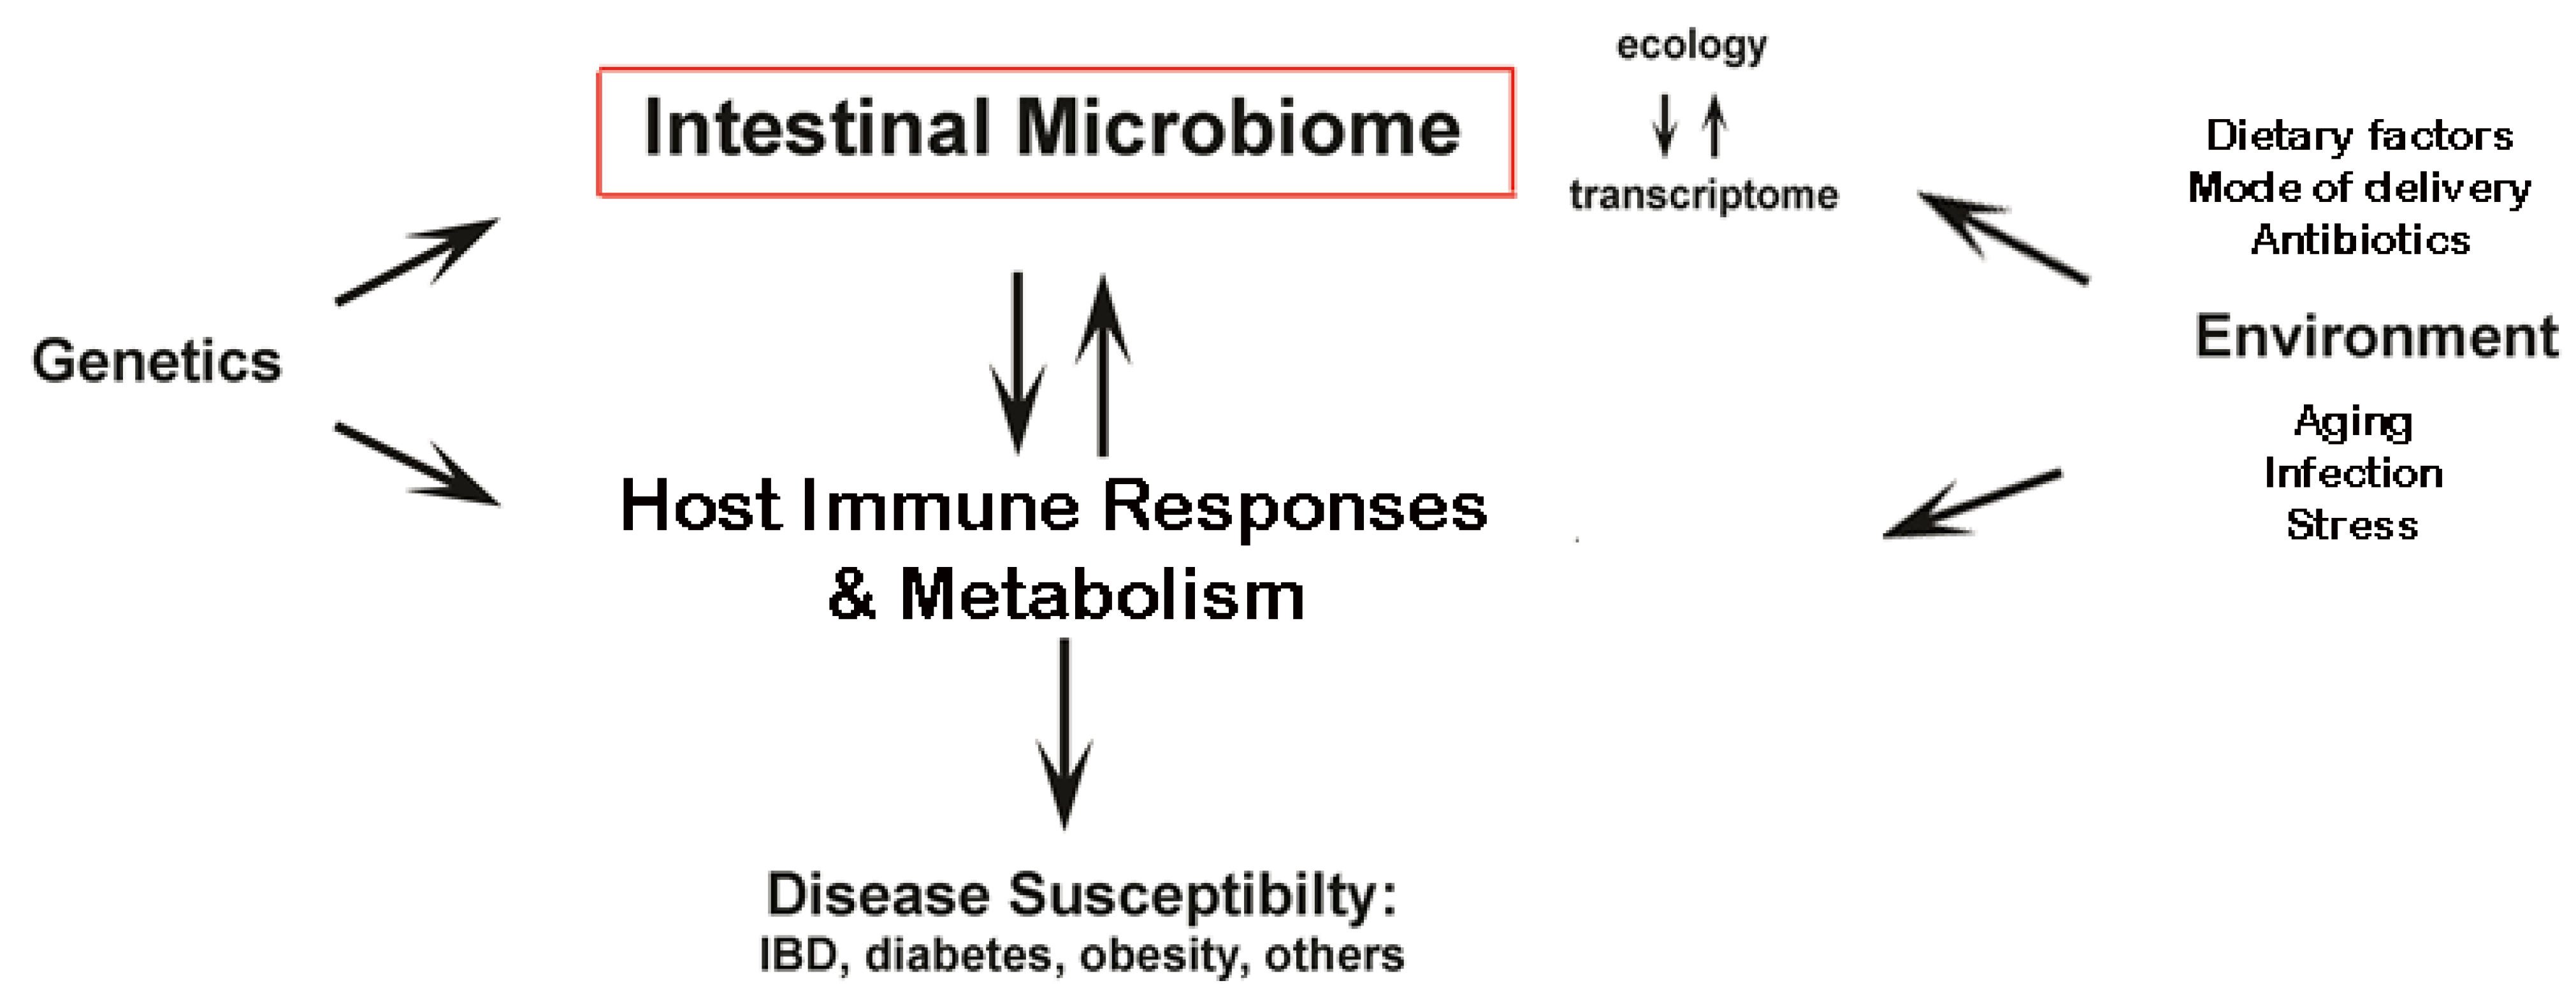 obesity alters gut microbial ecology essay Gut microbiota and obesity authors papers of particular lozupone ca, knight rd, gordon ji obesity alters gut microbial ecology proc natl acad sci usa.